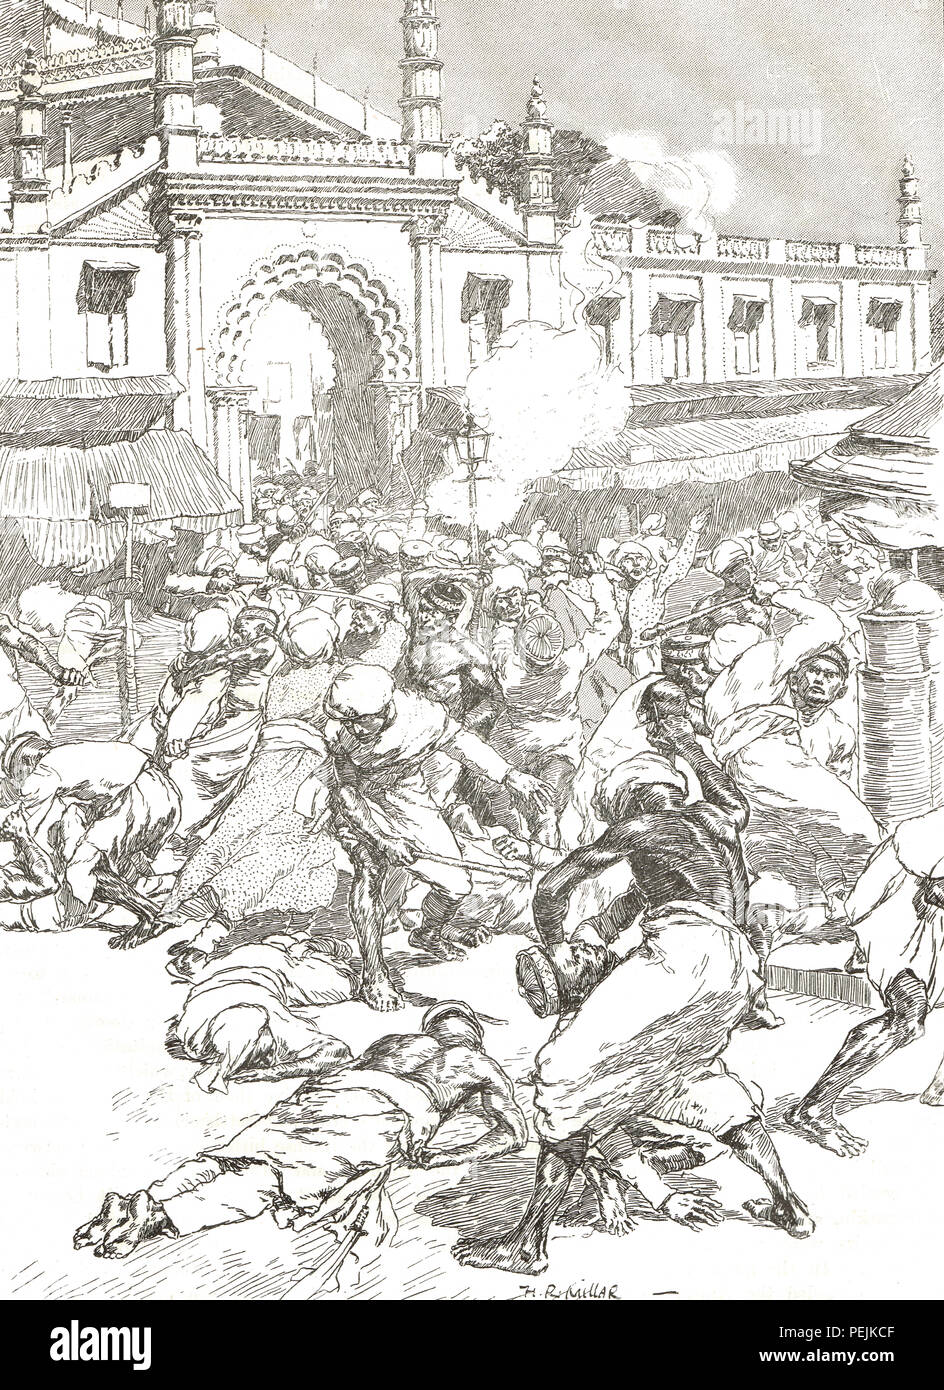 Riots in in Bombay, present day Mumbai. Religious faction fights between Muslims and Hindus, August 11-15 1893 - Stock Image